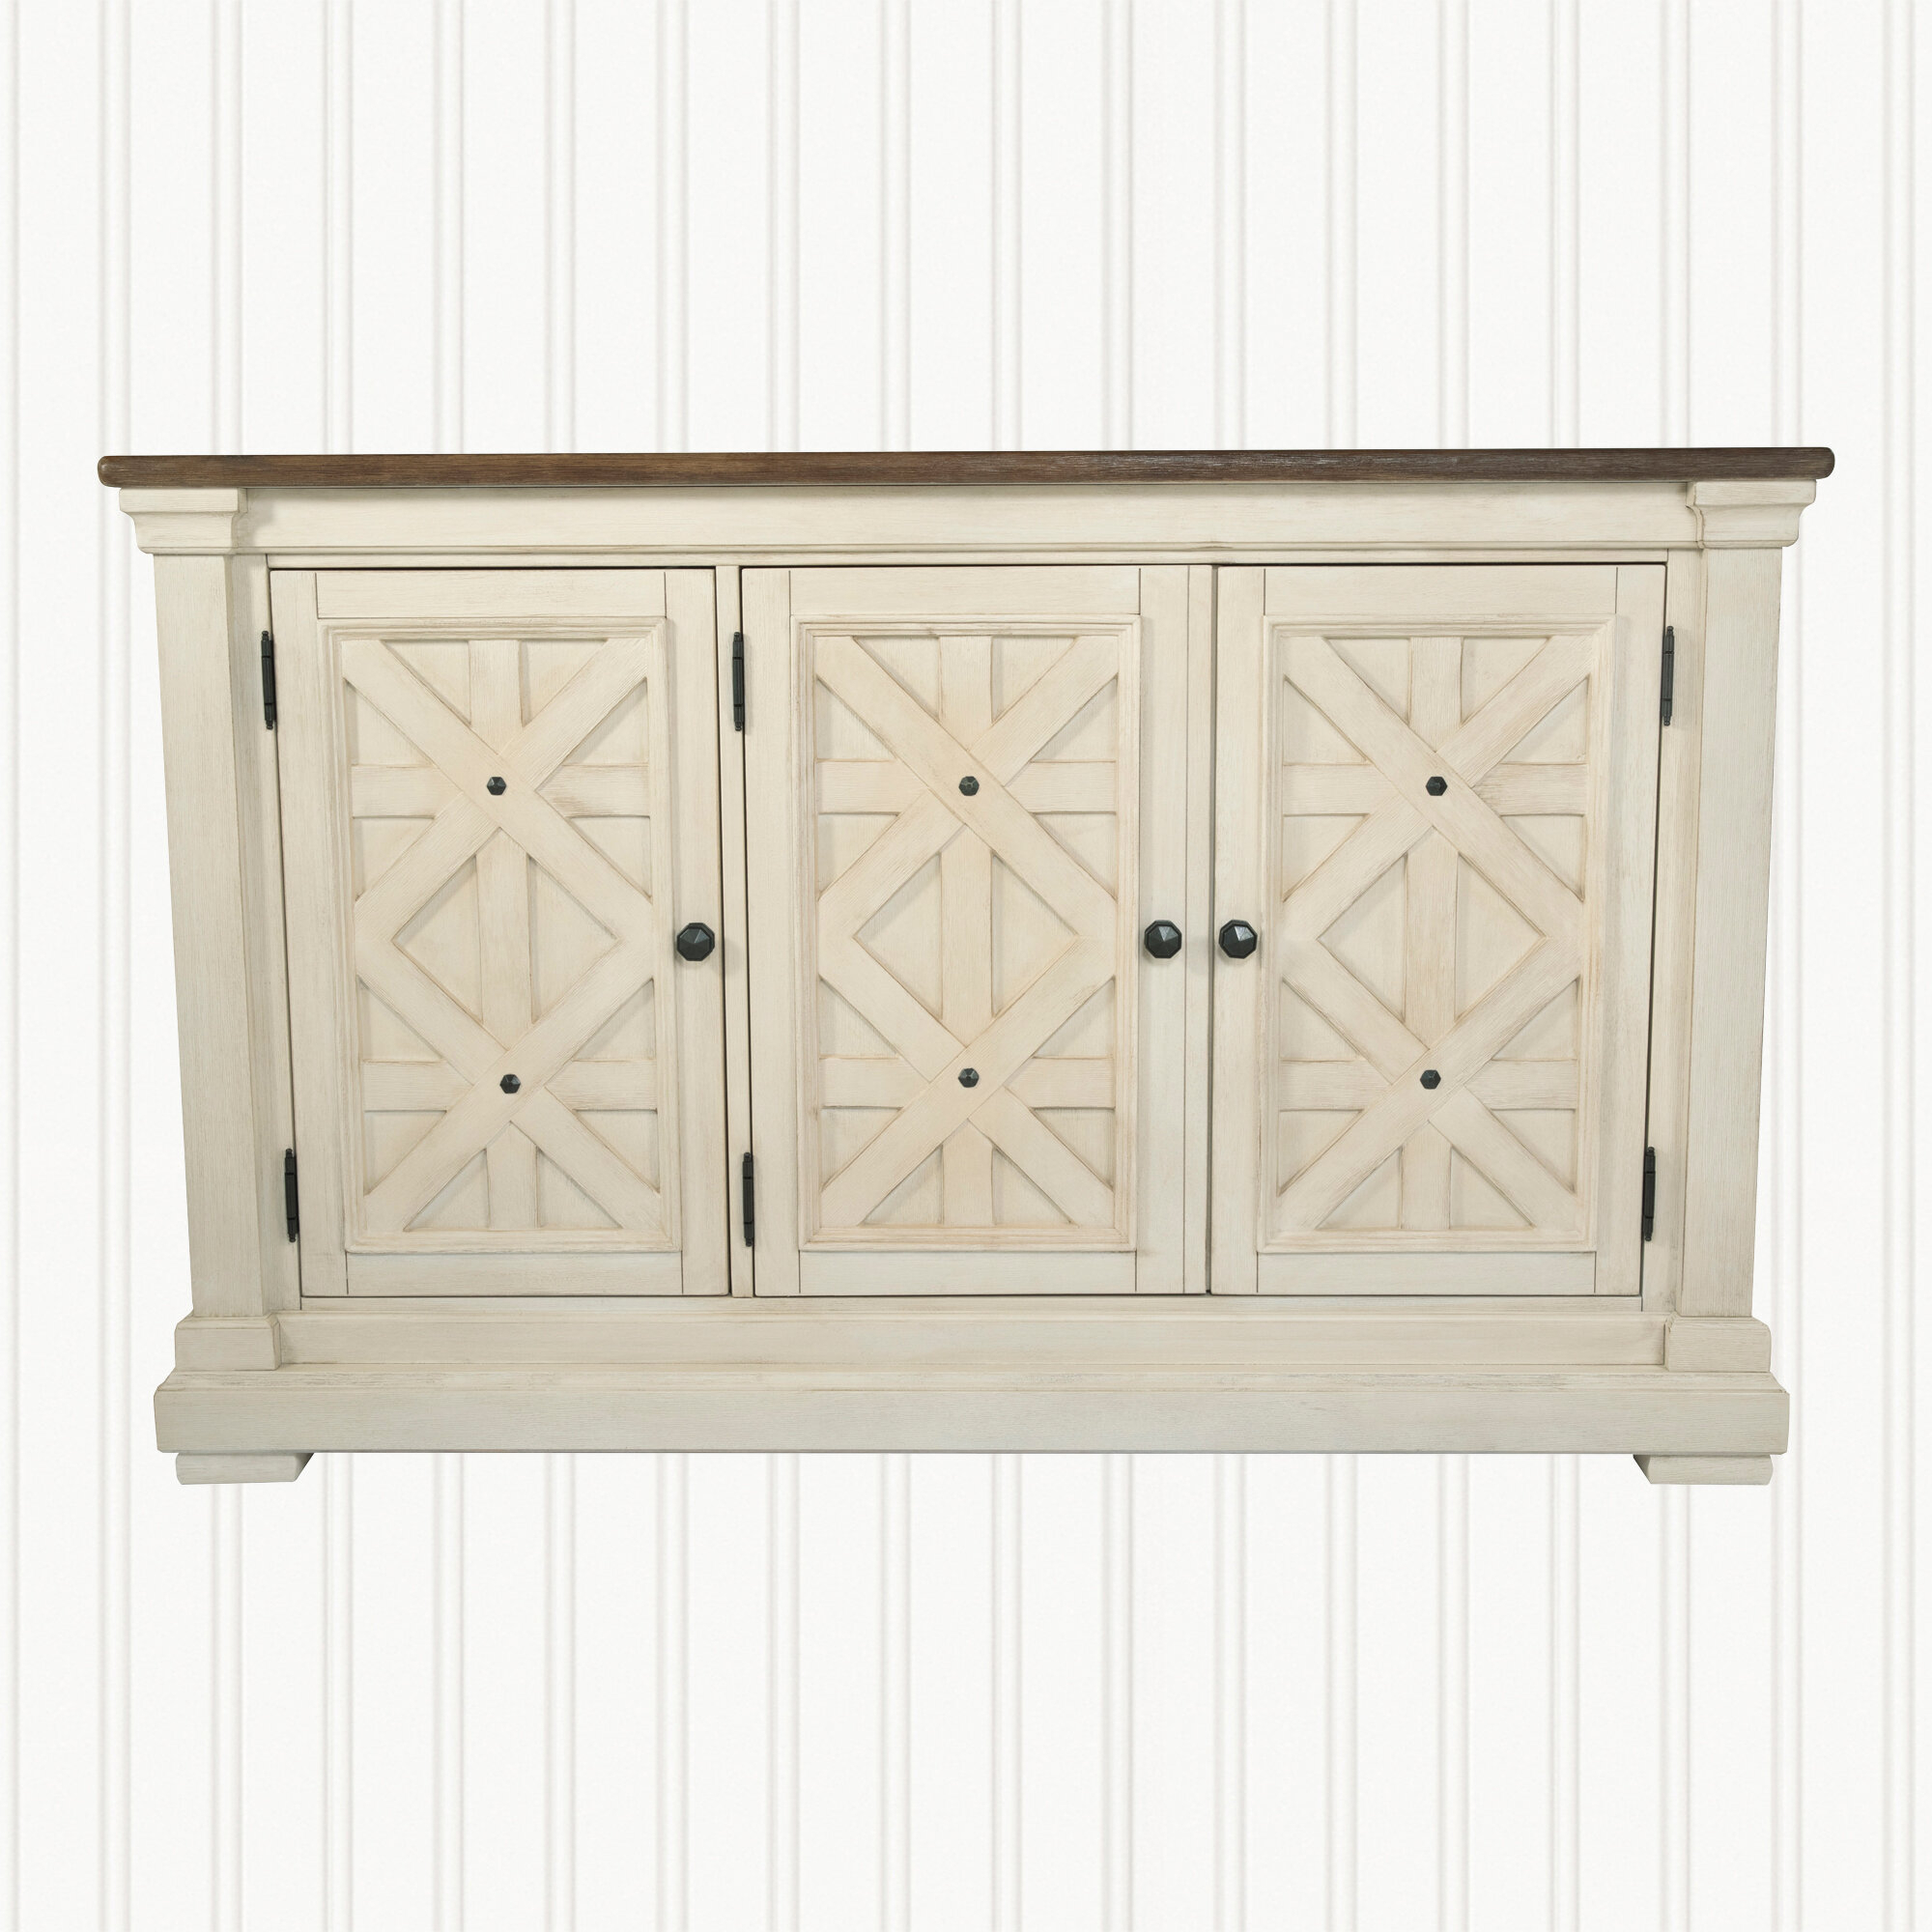 Farmhouse & Rustic White Wood Sideboards & Buffets | Birch Lane Throughout 2018 Baleine 3 Drawer Sideboards (#9 of 20)